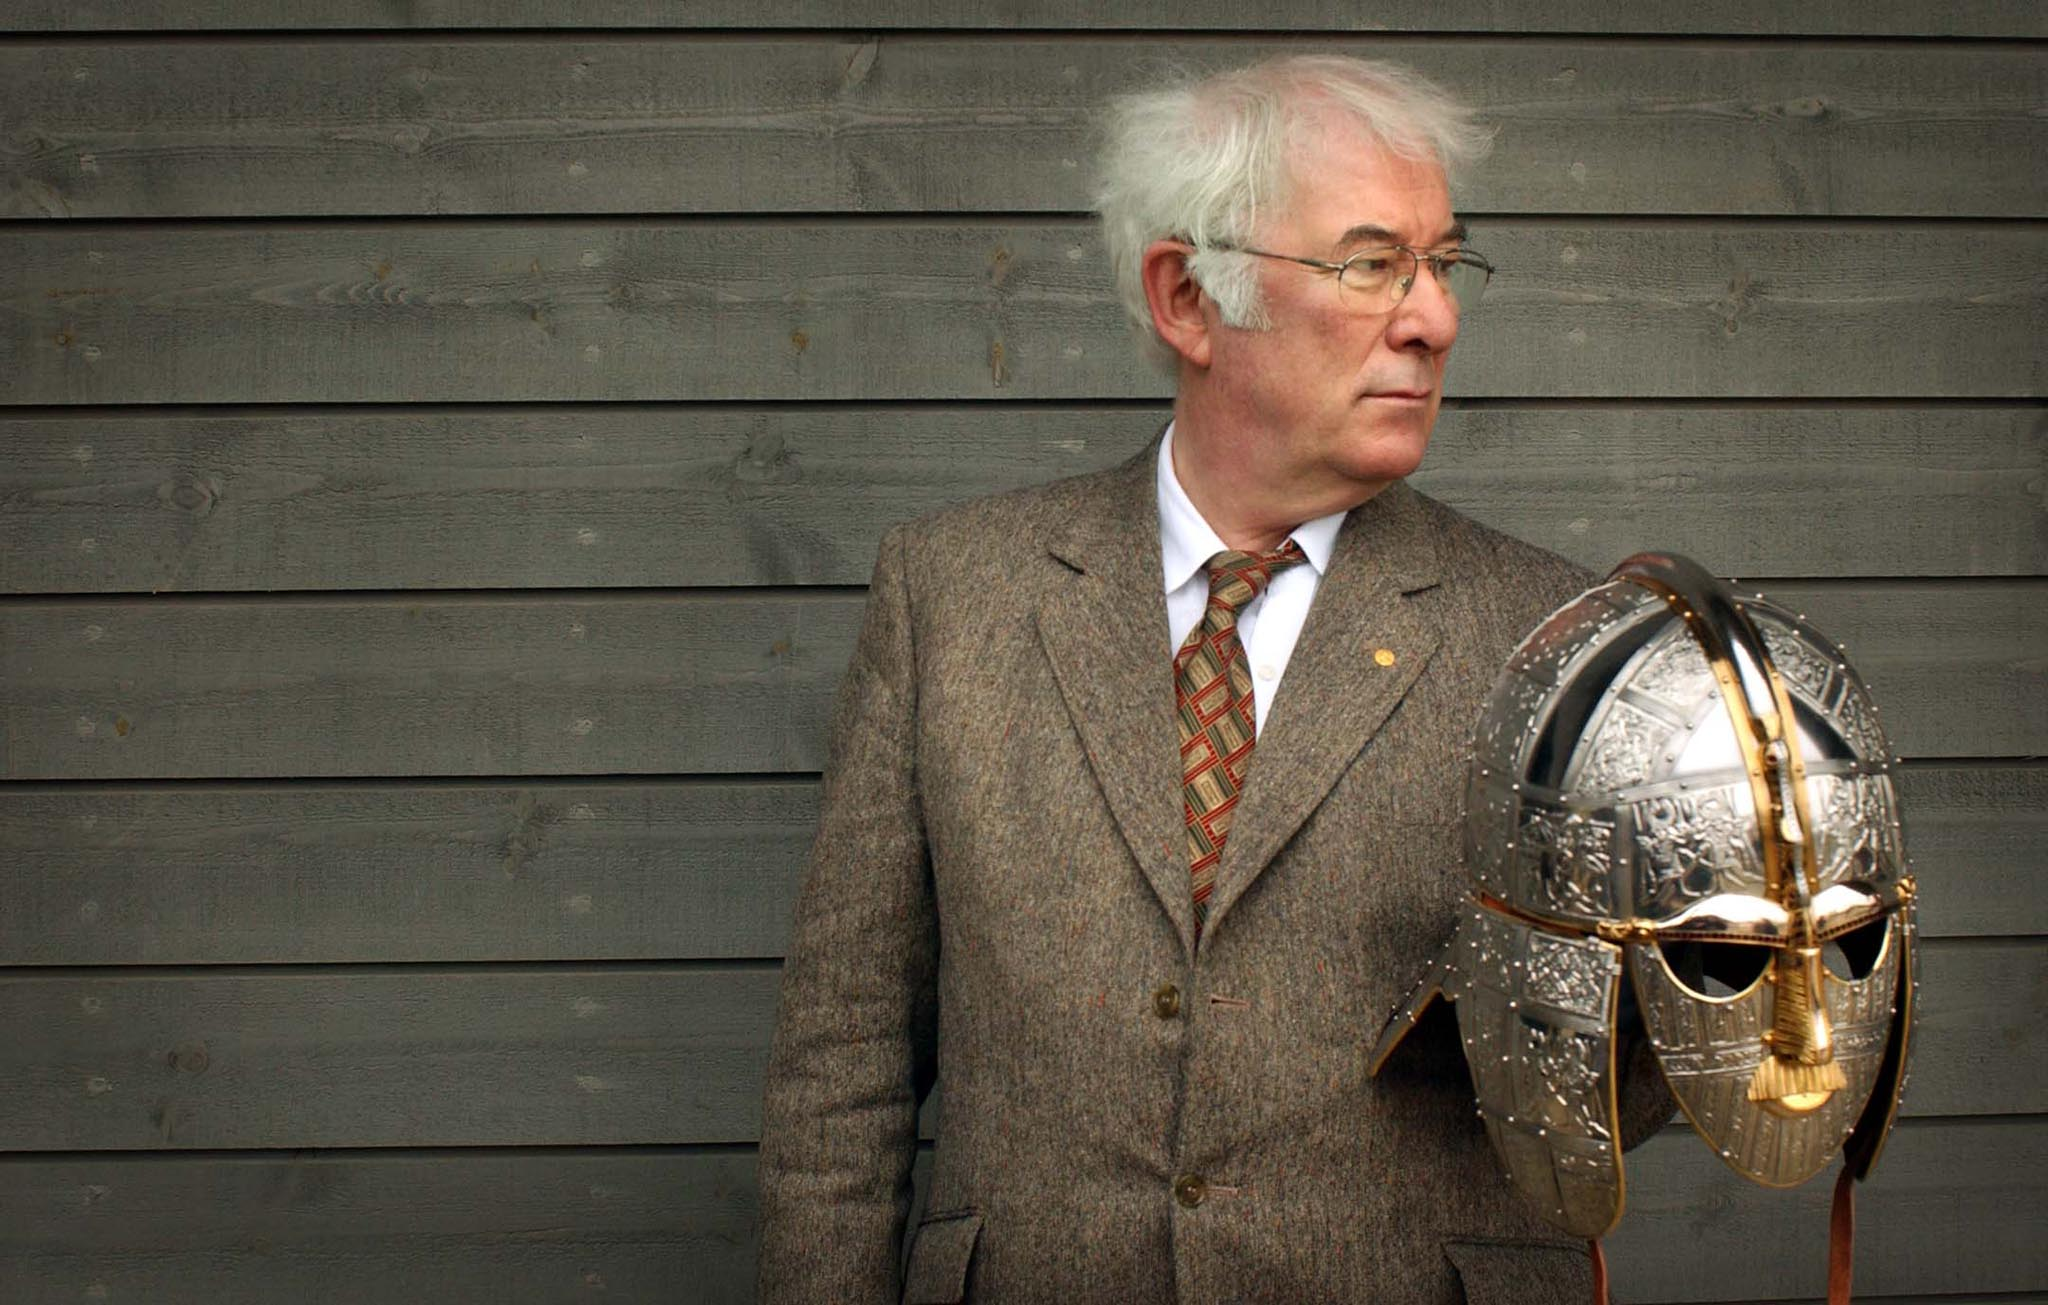 Mandatory Credit: Photo by REX/Tom Pilston / The Independent (2448851a) SEAMUS HEANEY AUTHOR OF THE ACCLAIMED TRANSLATION OF BEOWULF HOLDS A REPLICA OF THE SUTTON HOO HELMET AT THE OPENING OF A NEW EXHIBITION CENTRE AT THE SUTTON HOO SITE WHICH INCLUDES TREASURES LENT BY THE BRITISH MUSEUM. 13/3/02 SEAMUS HEANEY AUTHOR OF THE ACCLAIMED TRANSLATION OF BEOWULF HOLDS A REPLICA OF THE SUTTON HOO HELMET AT THE OPENING OF A NEW EXHIBITION CENTRE AT THE SUTTON HOO SITE WHICH INCLUDES TREASURES LENT BY THE BRITISH MUSEUM. 13/3/02